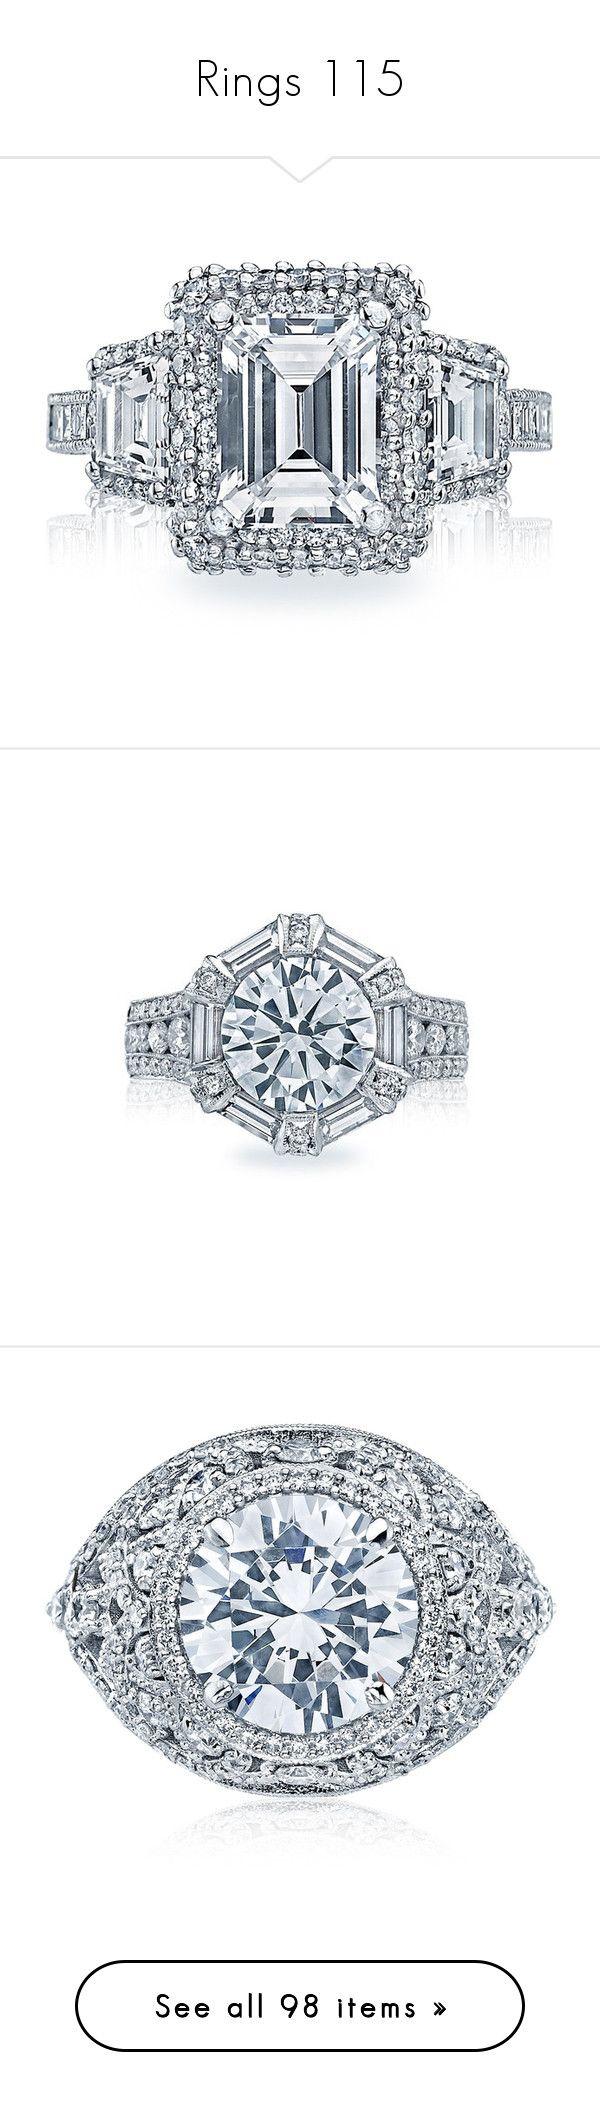 """""""Rings 115"""" by singlemom ❤ liked on Polyvore featuring jewelry, rings, channel setting ring, channel set ring, tacori rings, tacori jewelry, tacori, pave jewelry, twisted engagement ring and twist ring"""